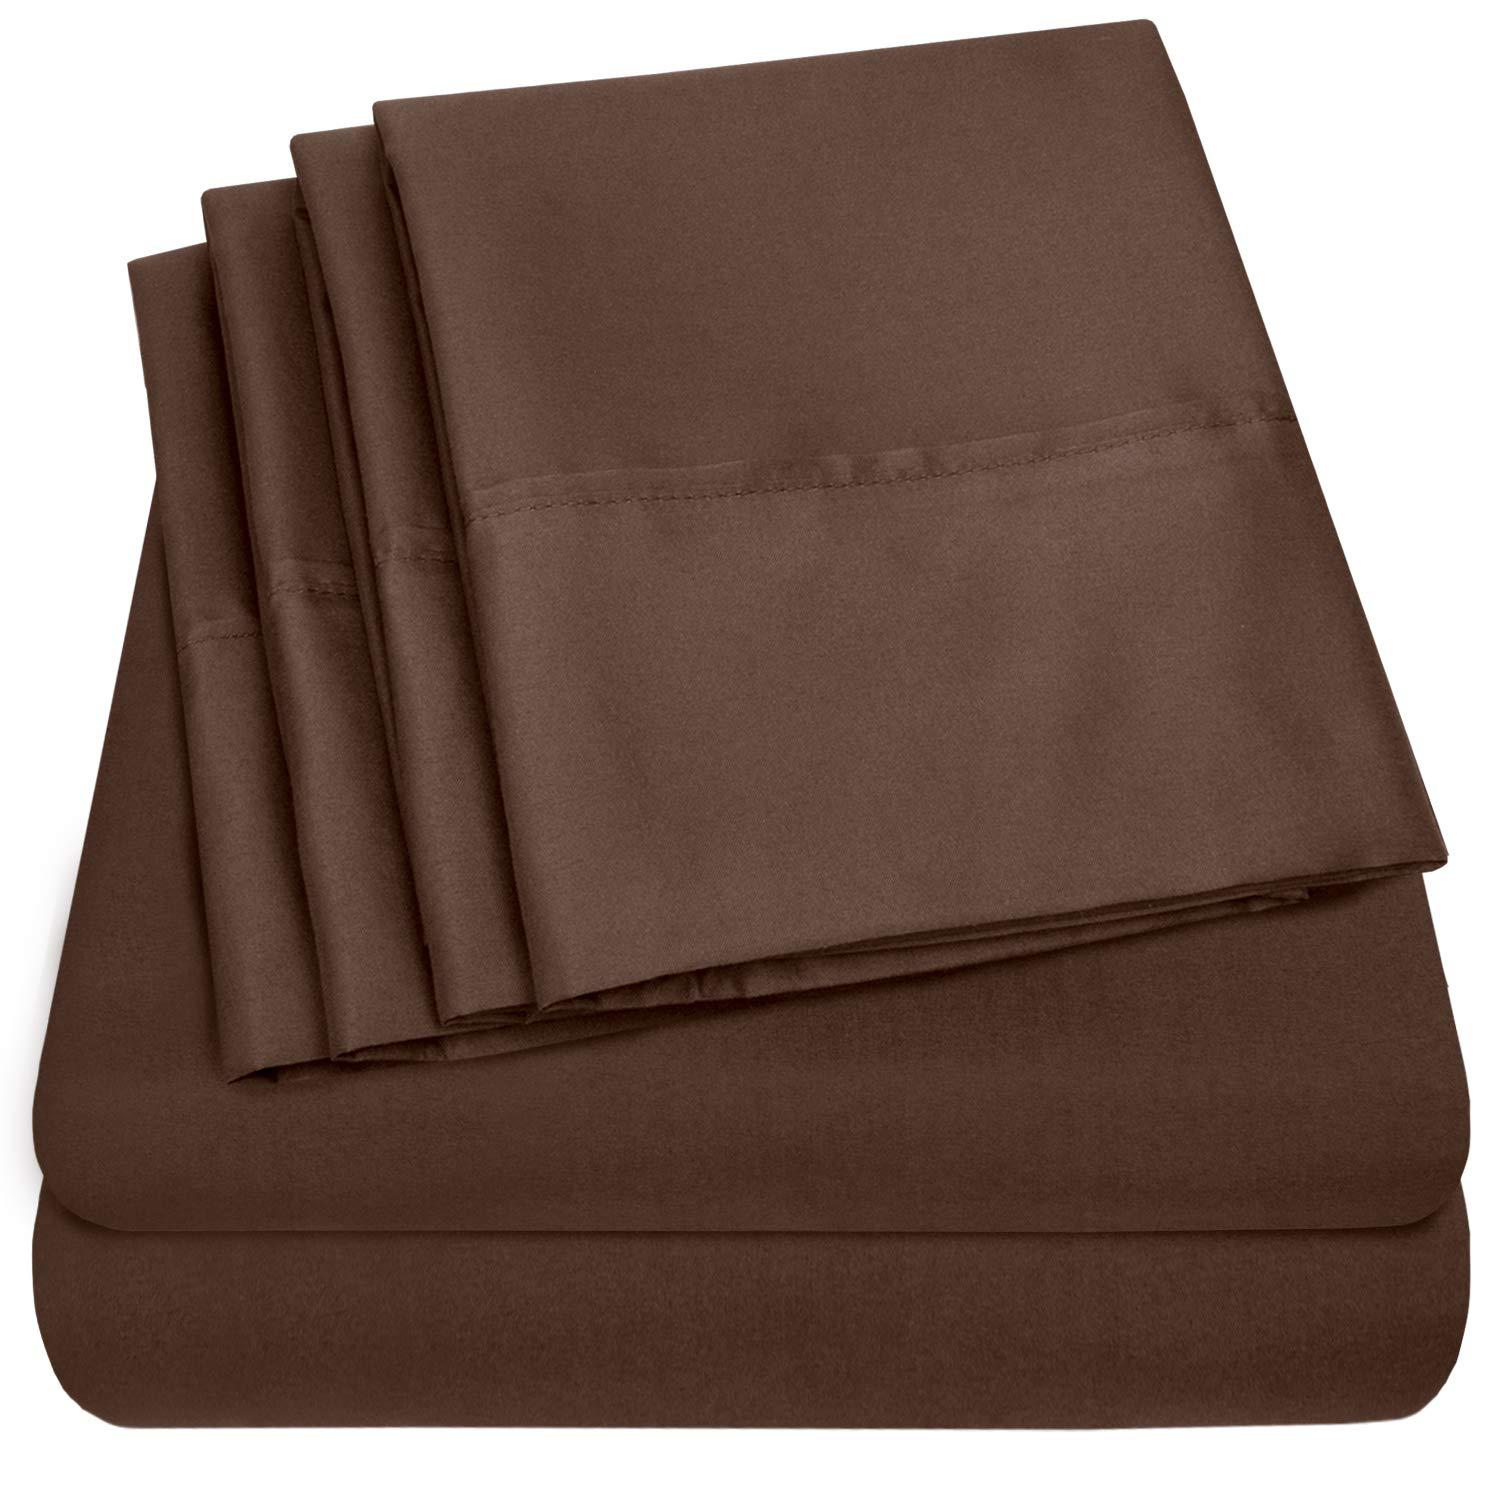 Sweet Home Collection Quality Deep Pocket Bed Sheet Set - 2 EXTRA PILLOW CASES, VALUE, Twin XL, Brown, 4 Piece